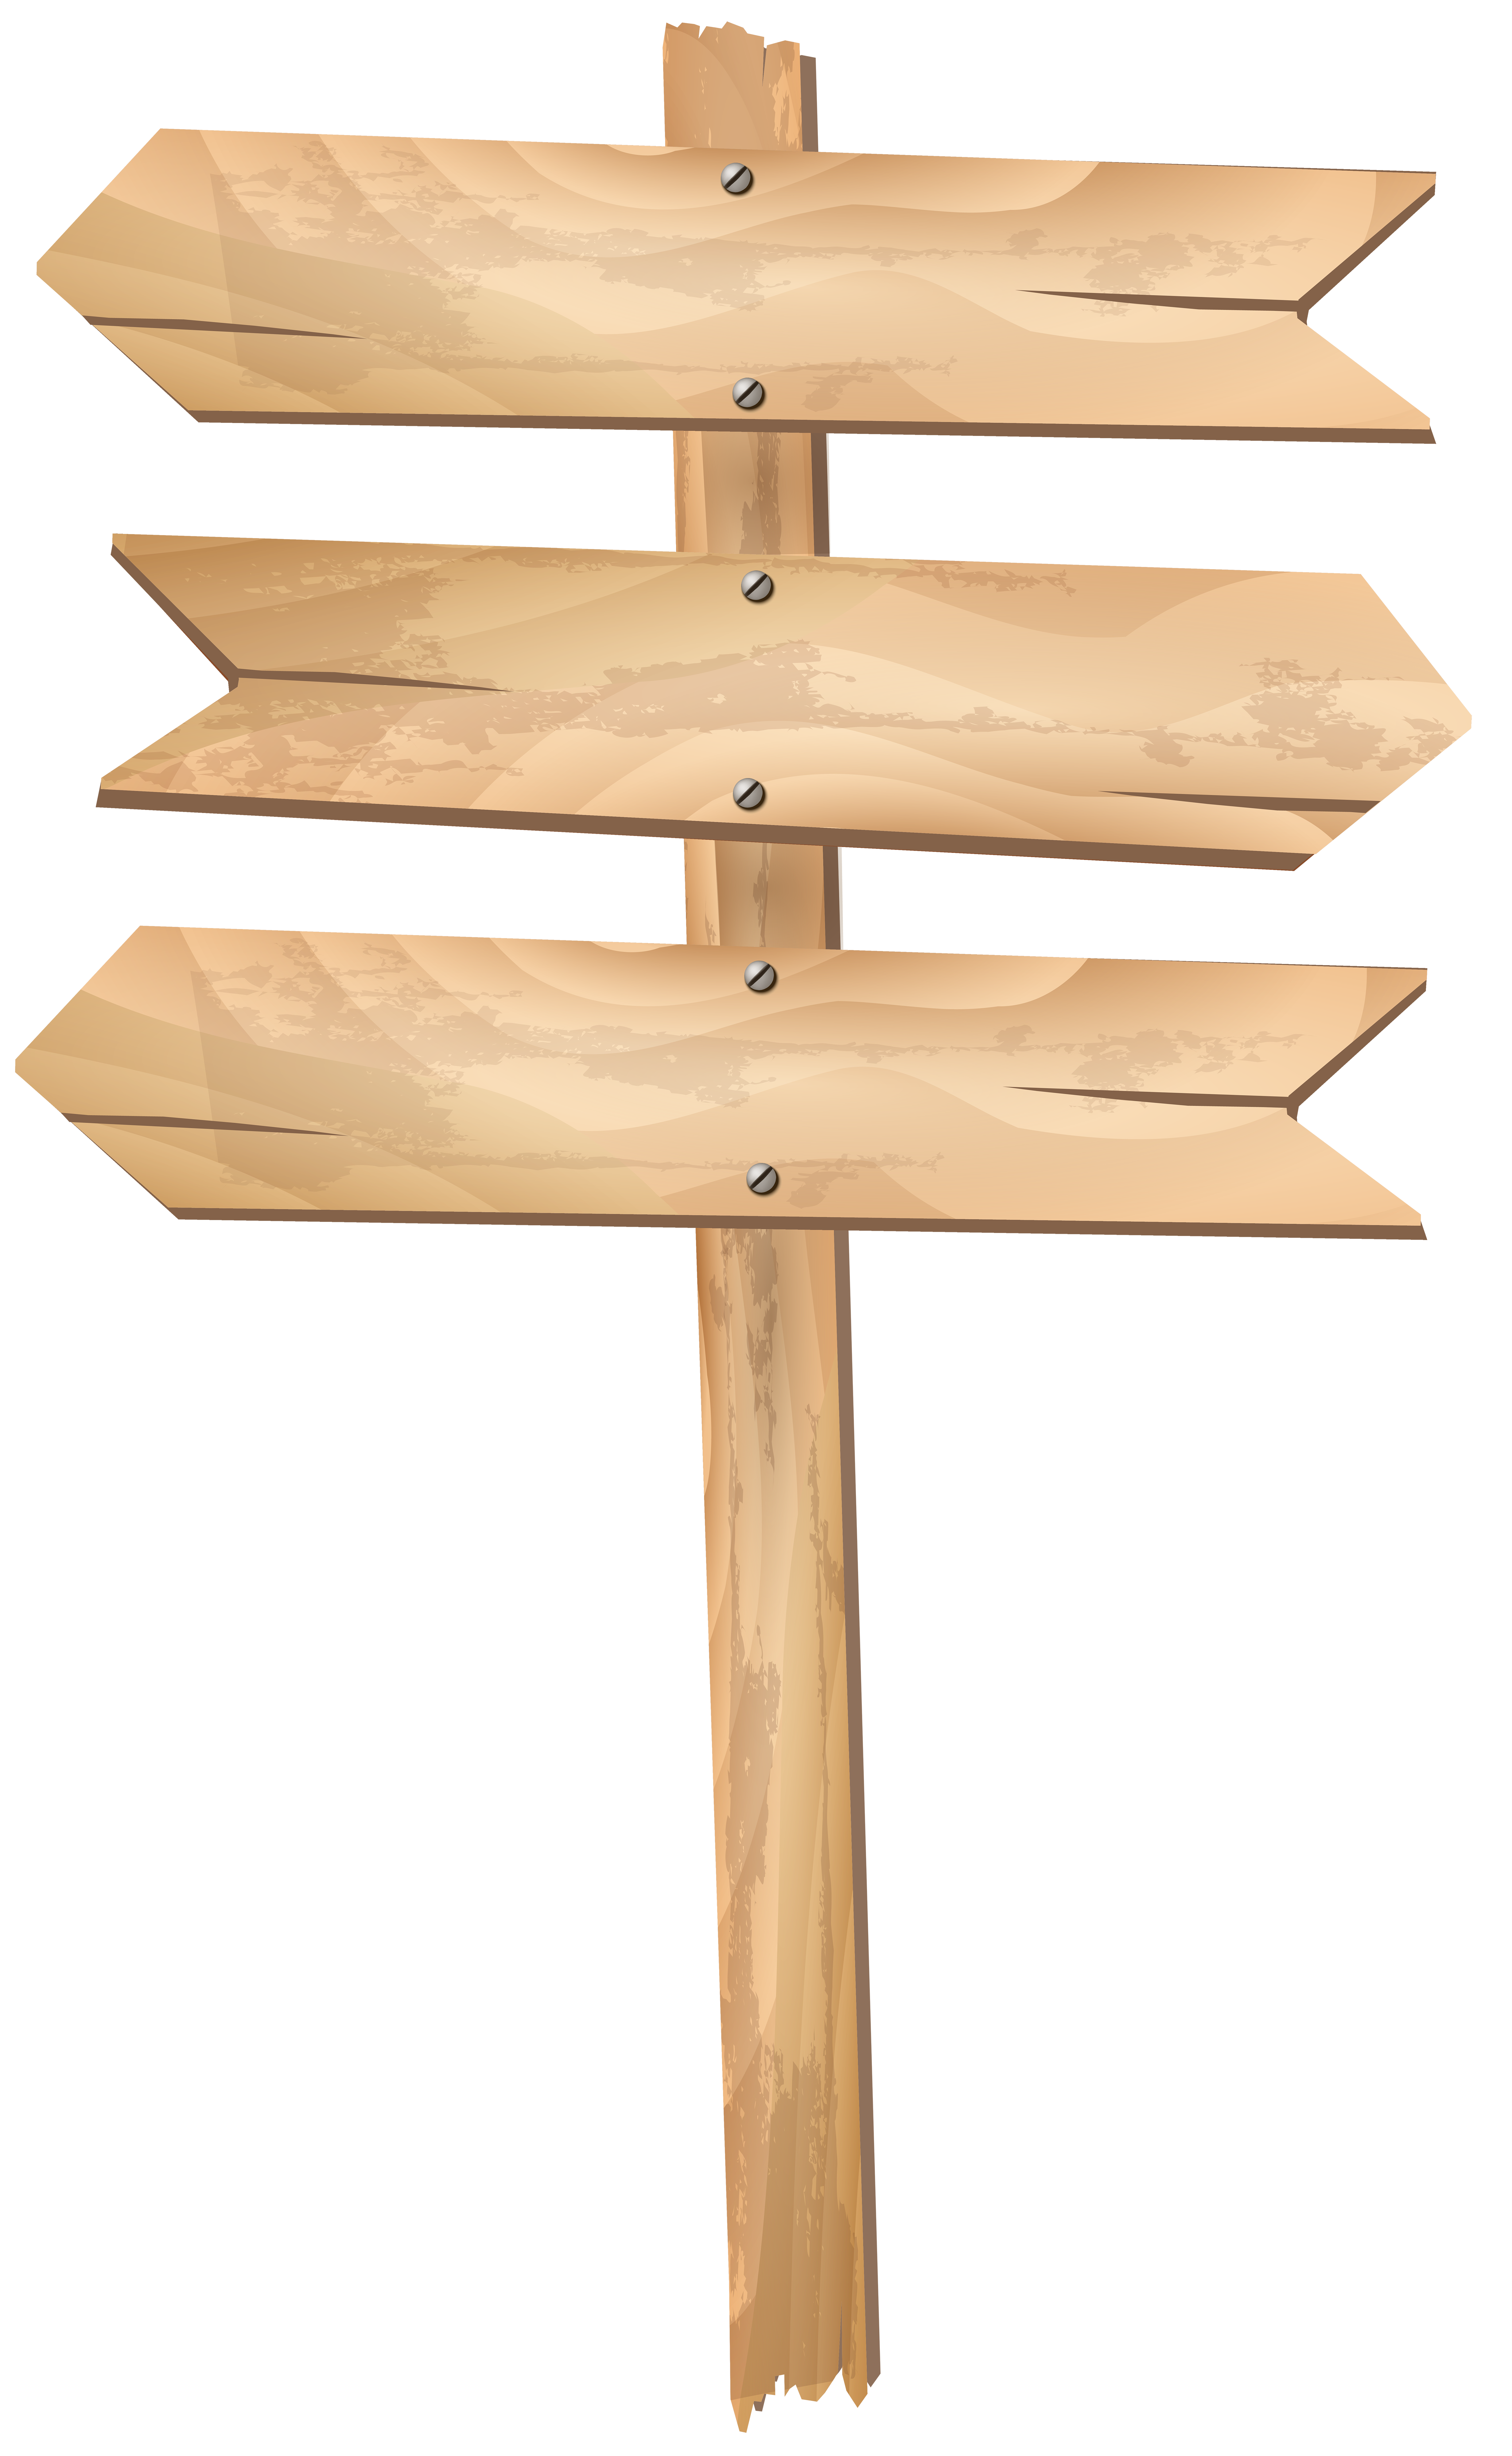 Hanging wooden sign png. Clip art image gallery